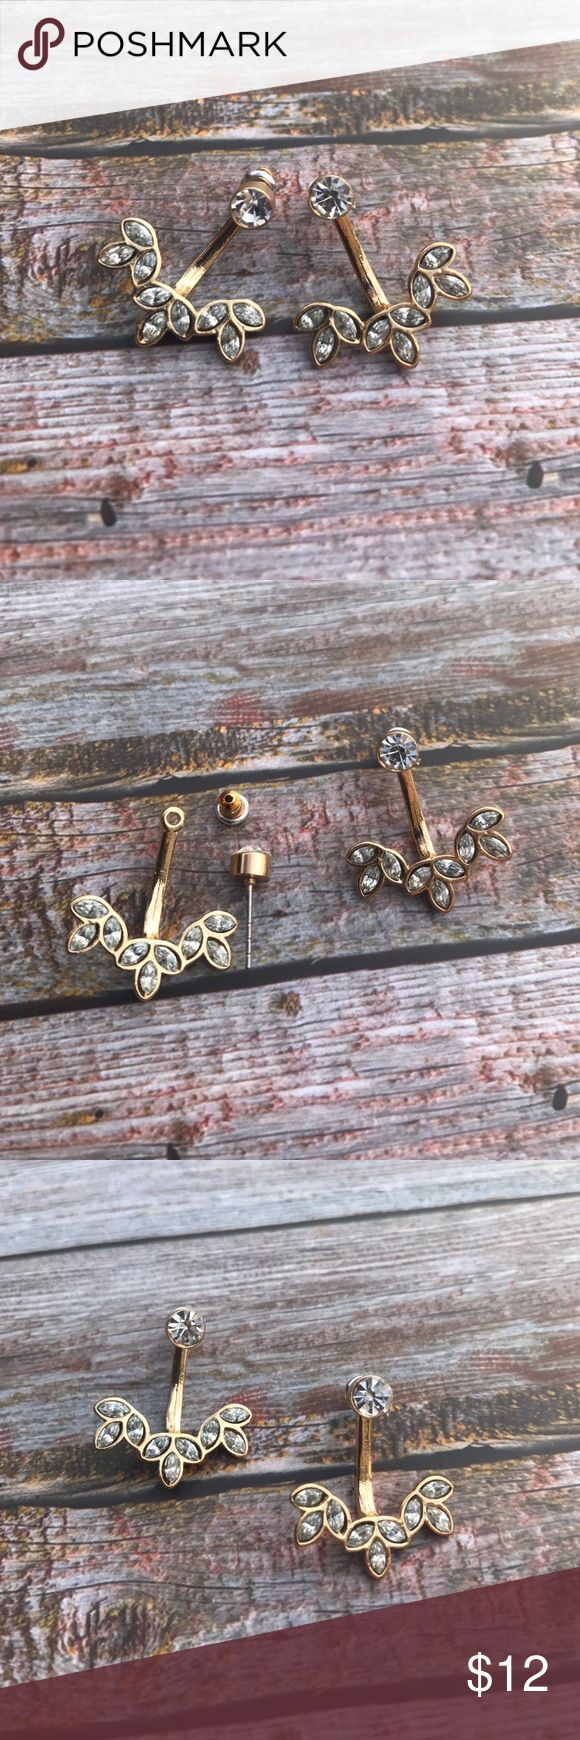 << Gold & Glam Front Back Rhinestone Earrings >> These babies are perfect too add a bit of rhinestone glam to any outfit! Flare it up with these front and back earrings! Hypo allergenic Boutique Jewelry Earrings